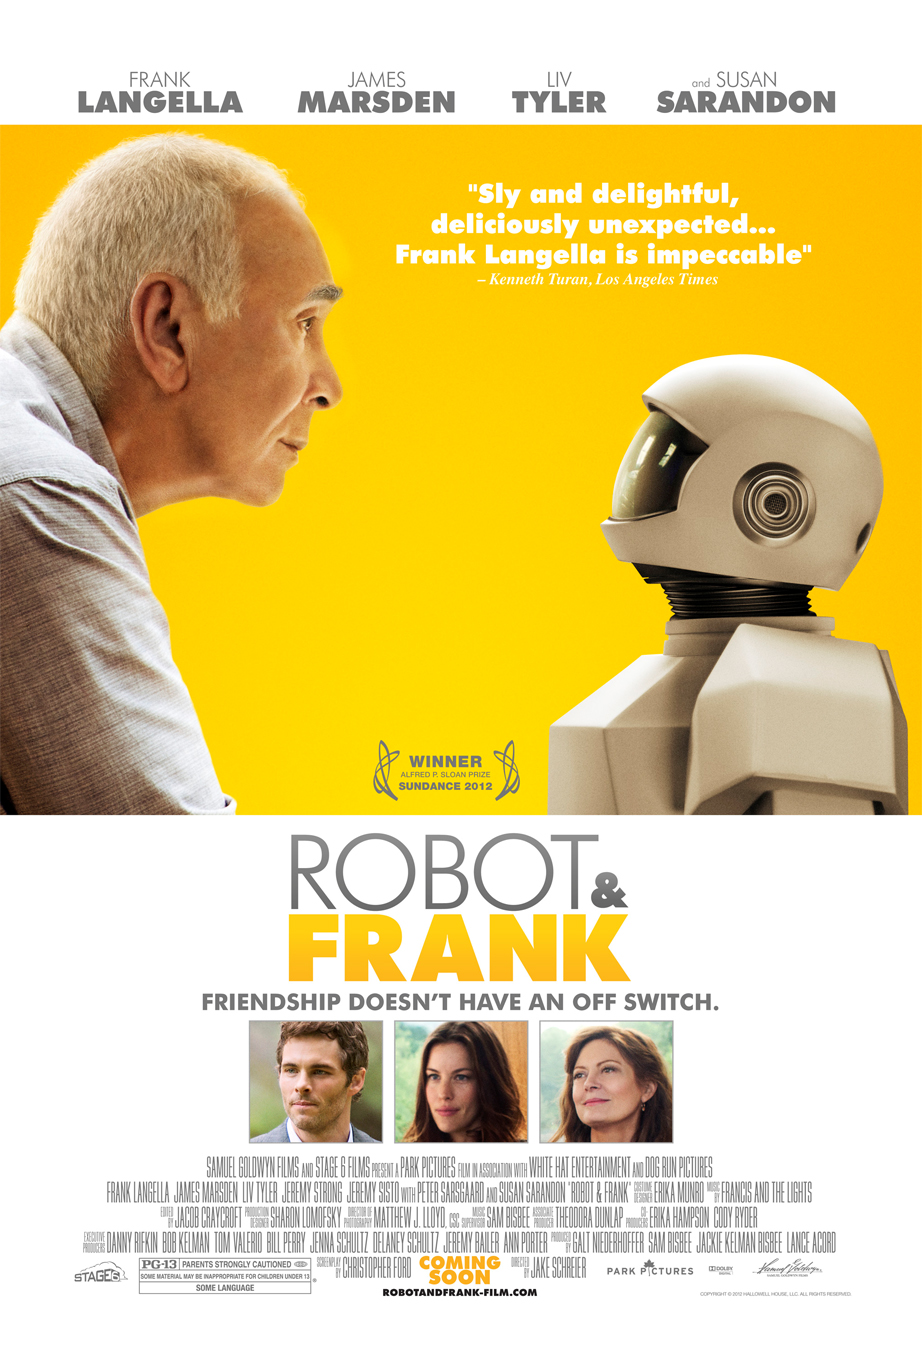 Honest and Entertaining Trailer for Sundance Favorite 'Robot & Frank'